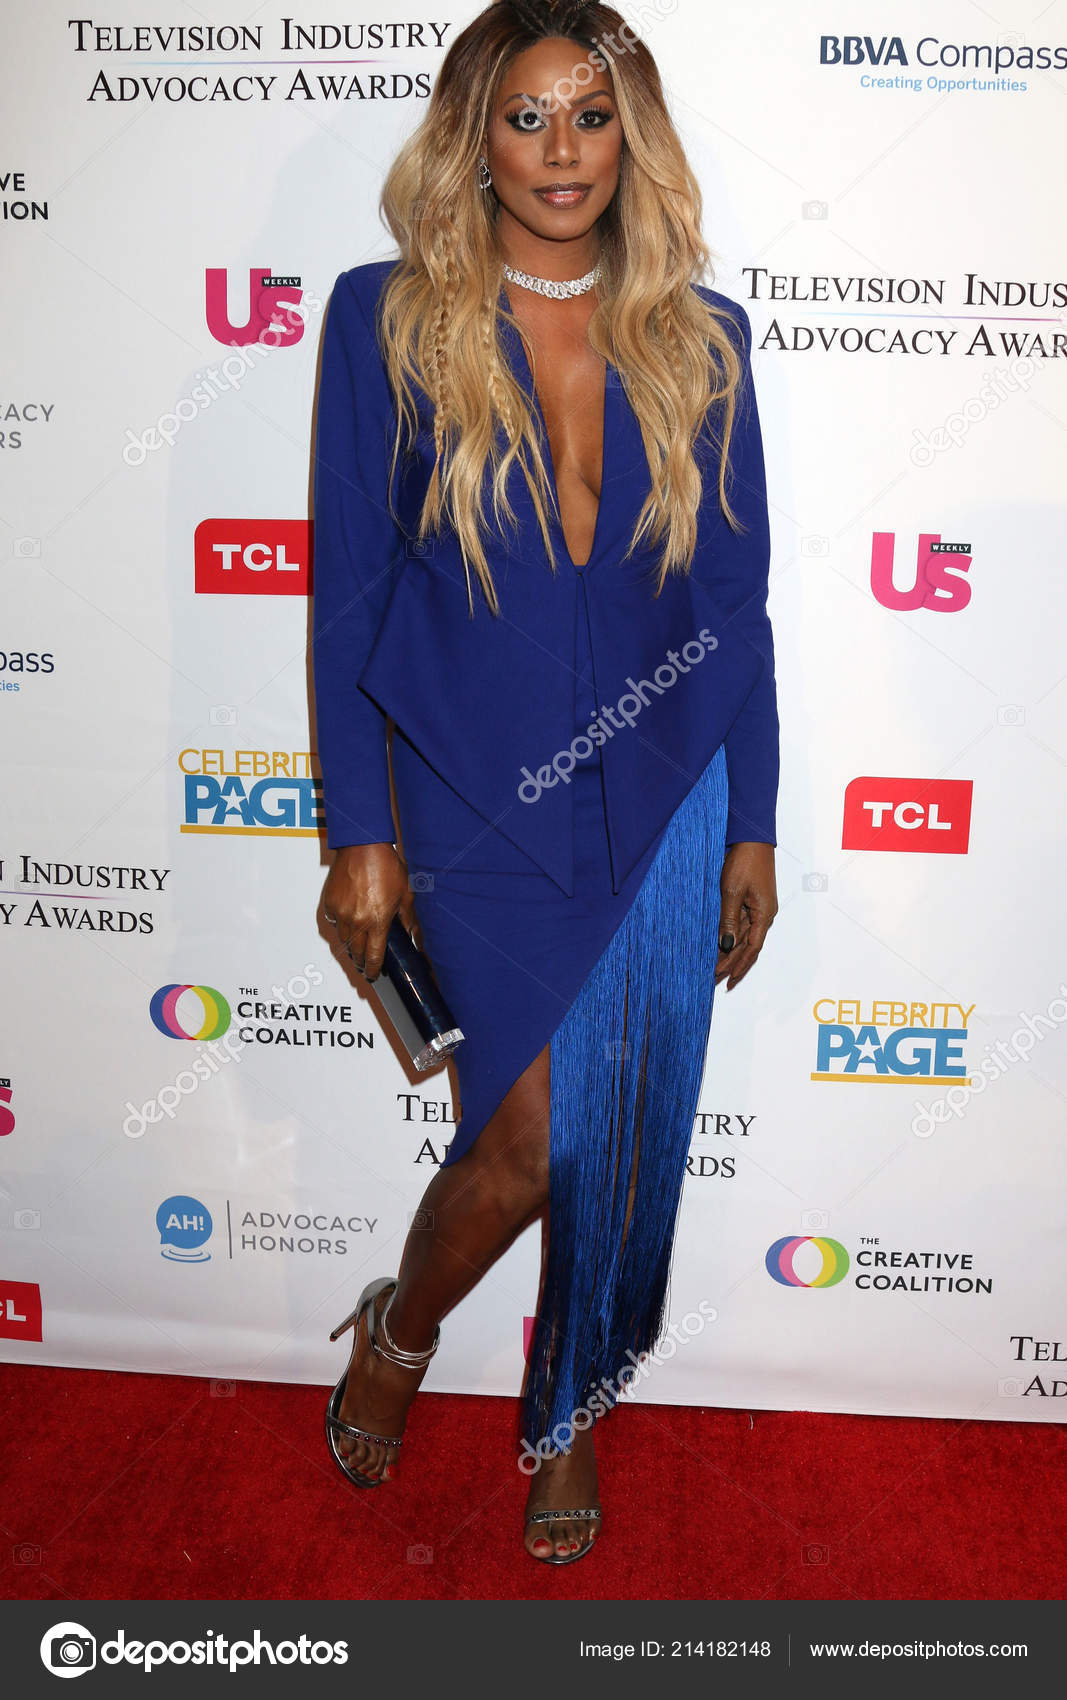 fc6a8c224b1 LOS ANGELES - SEP 15: Laverne Cox at the 2018 Television Industry Advocacy  Awards at the Sofitel Los Angeles on September 15, 2018 in Beverly Hills,  ...